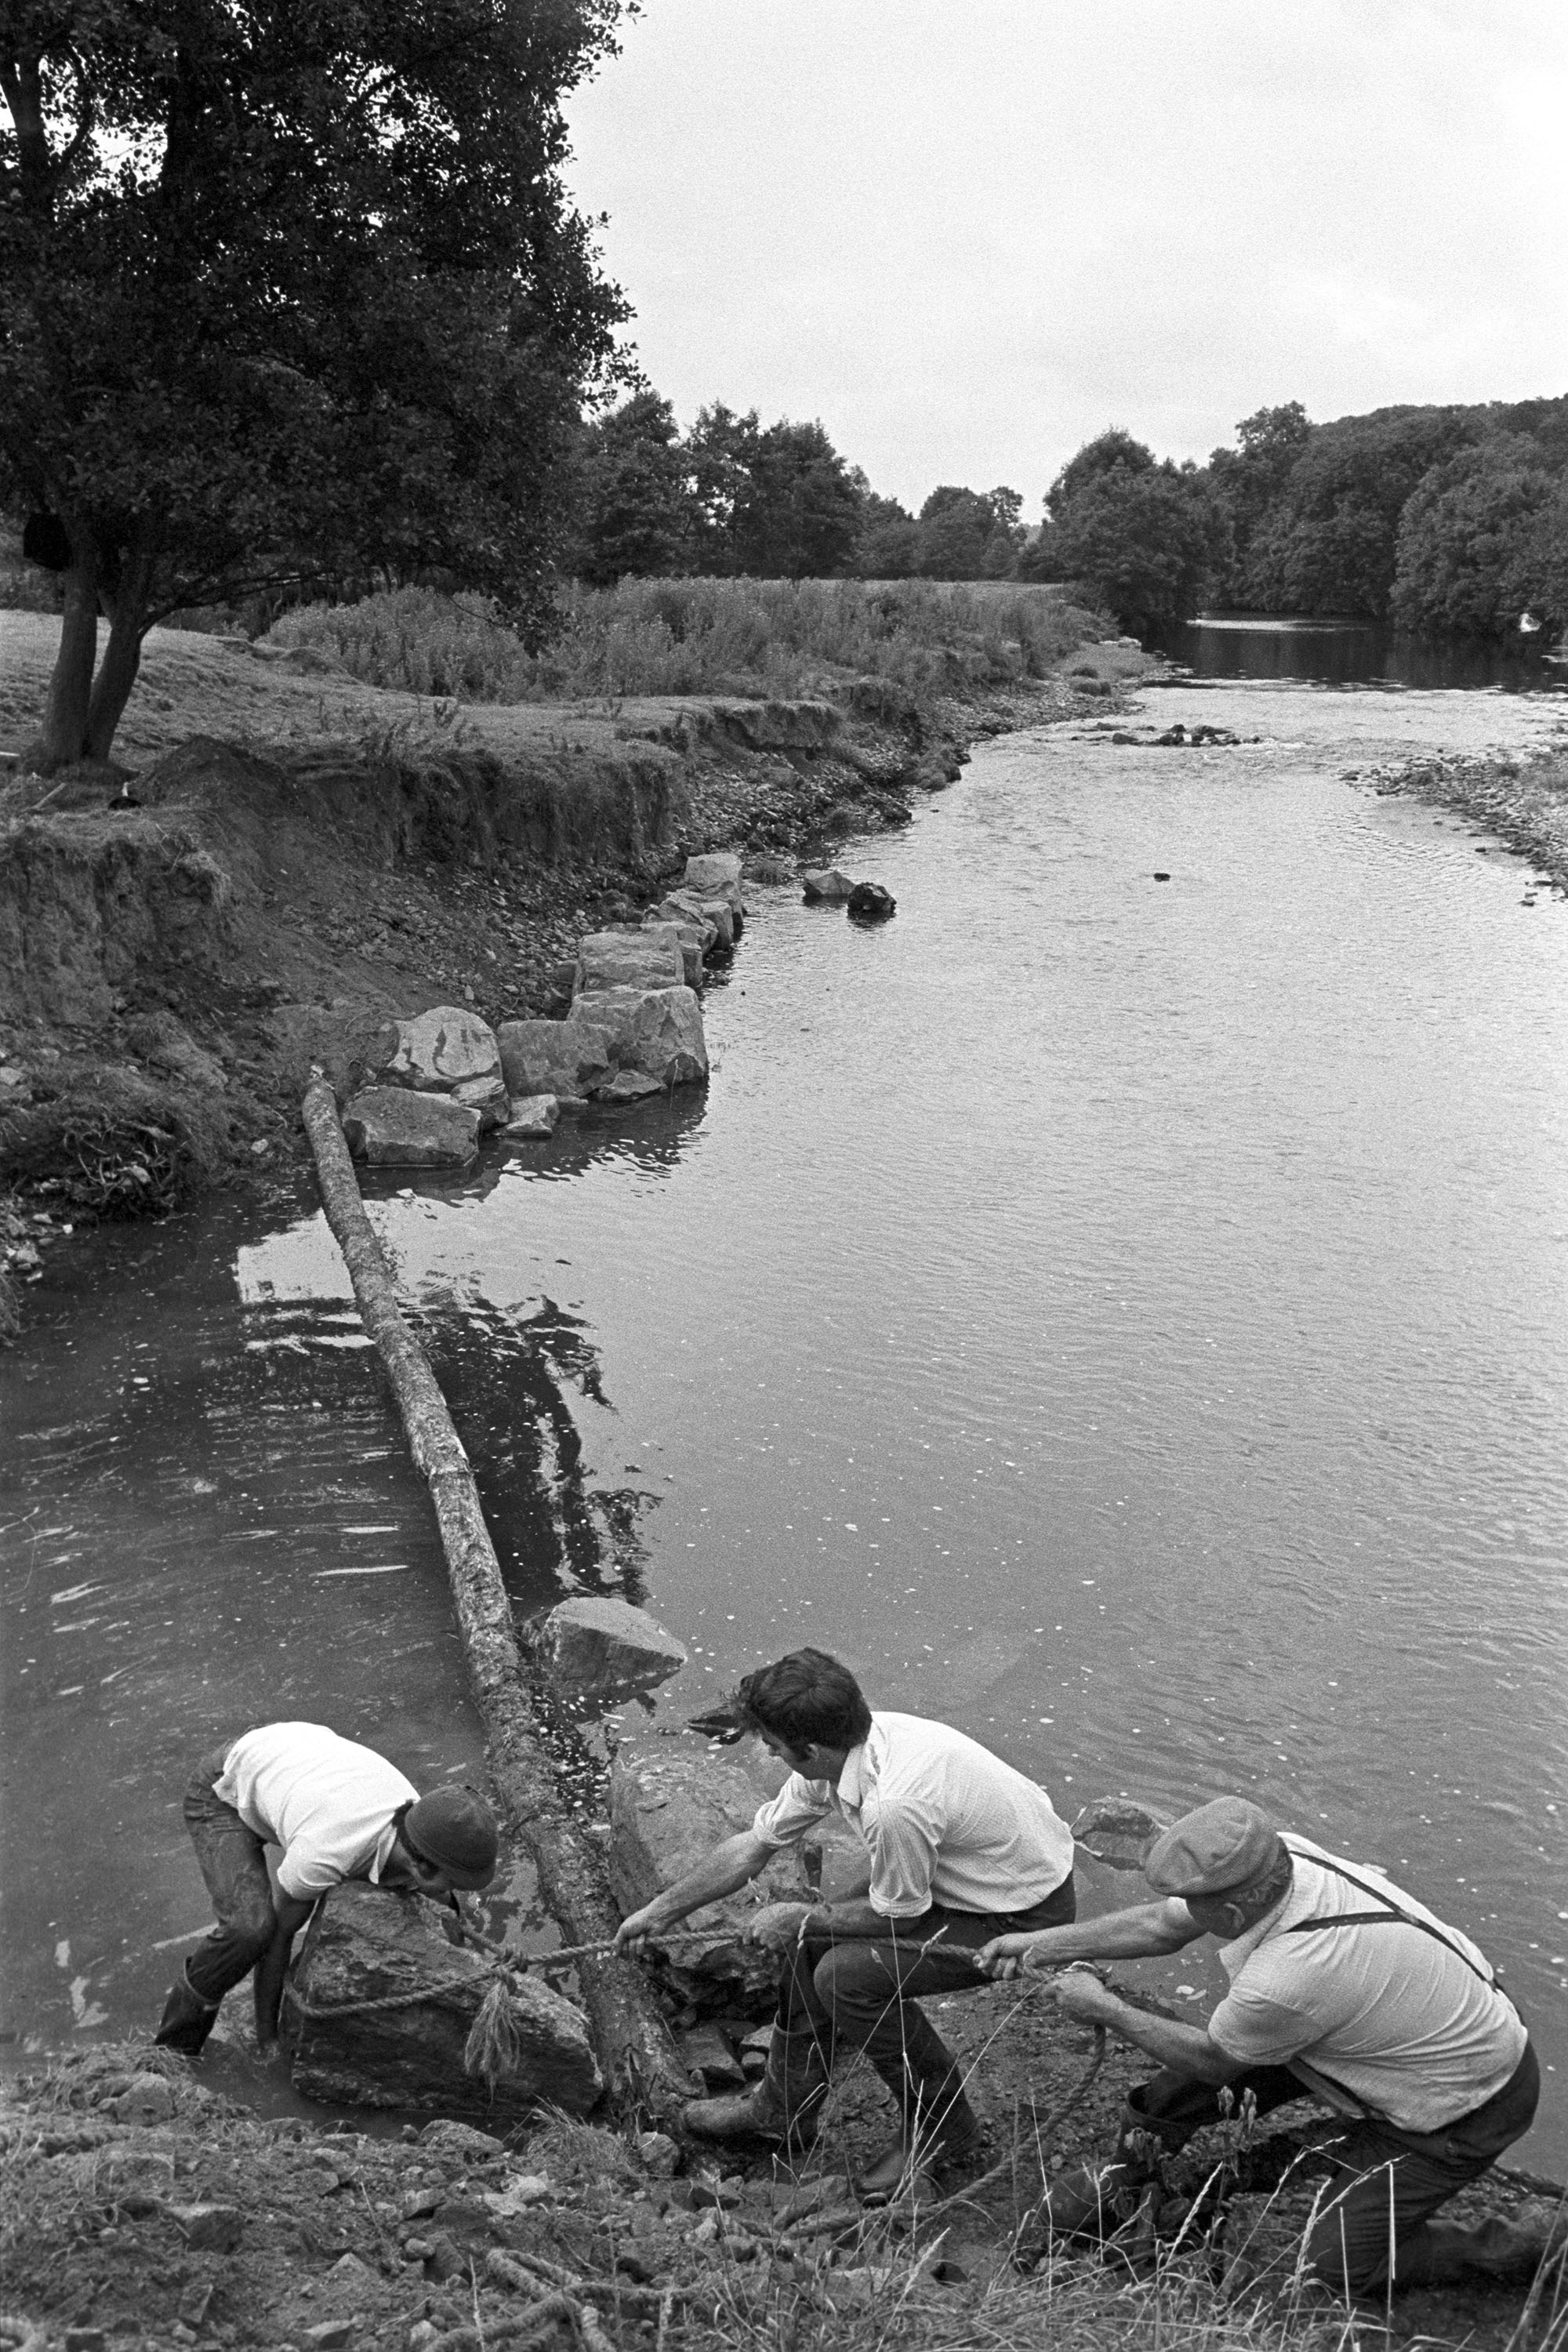 Farmers putting boulders to protect river bank. <br /> [John Ward, David Ward and Graham Ward moving boulders with a rope on a riverbank at Parsonage Farm, Iddesleigh, to protect the river bank from erosion.]